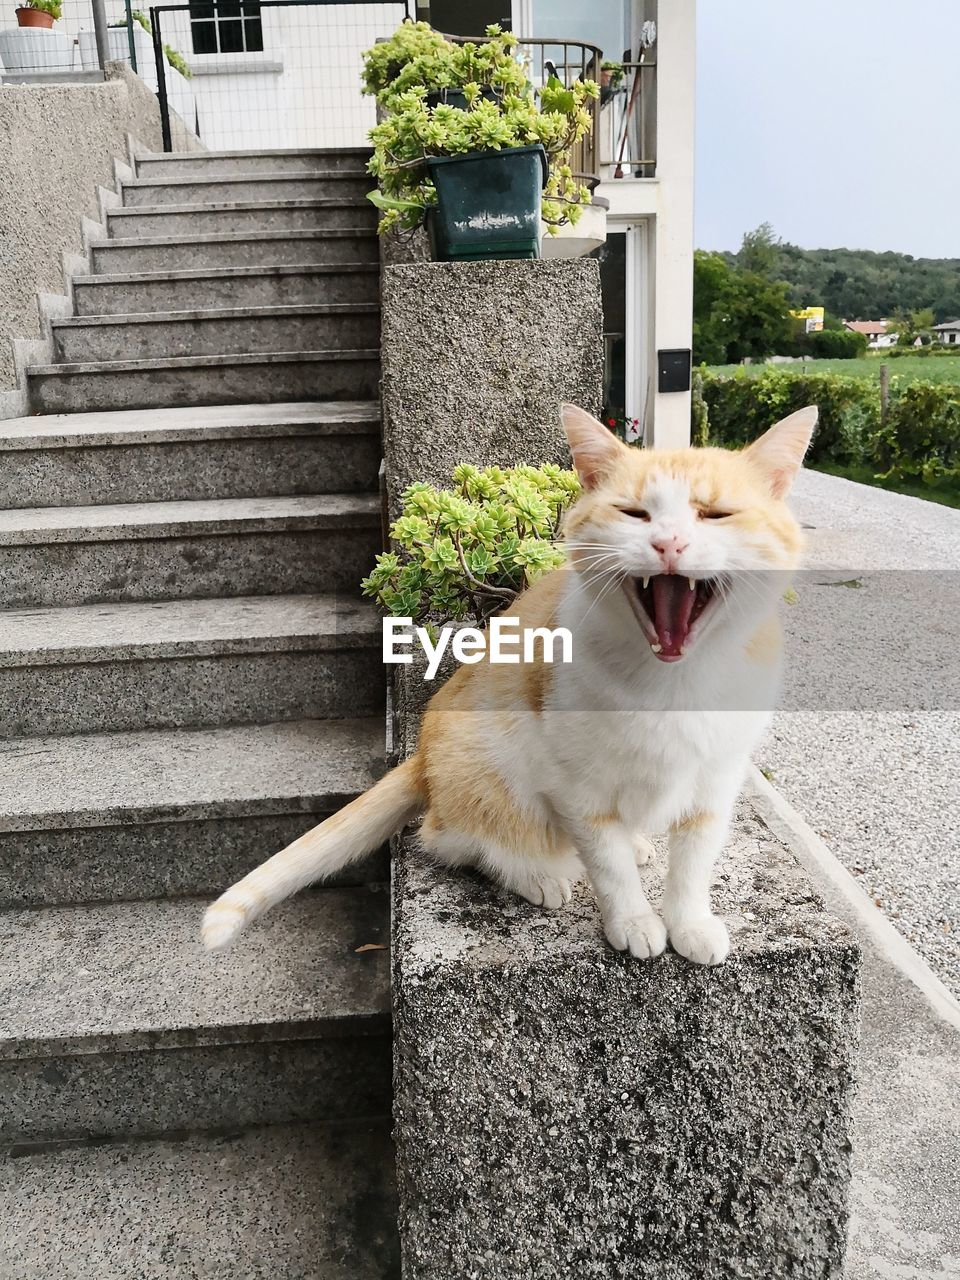 domestic, pets, domestic animals, mammal, one animal, animal, vertebrate, animal themes, staircase, mouth, mouth open, cat, architecture, feline, domestic cat, built structure, yawning, steps and staircases, facial expression, no people, animal mouth, aggression, whisker